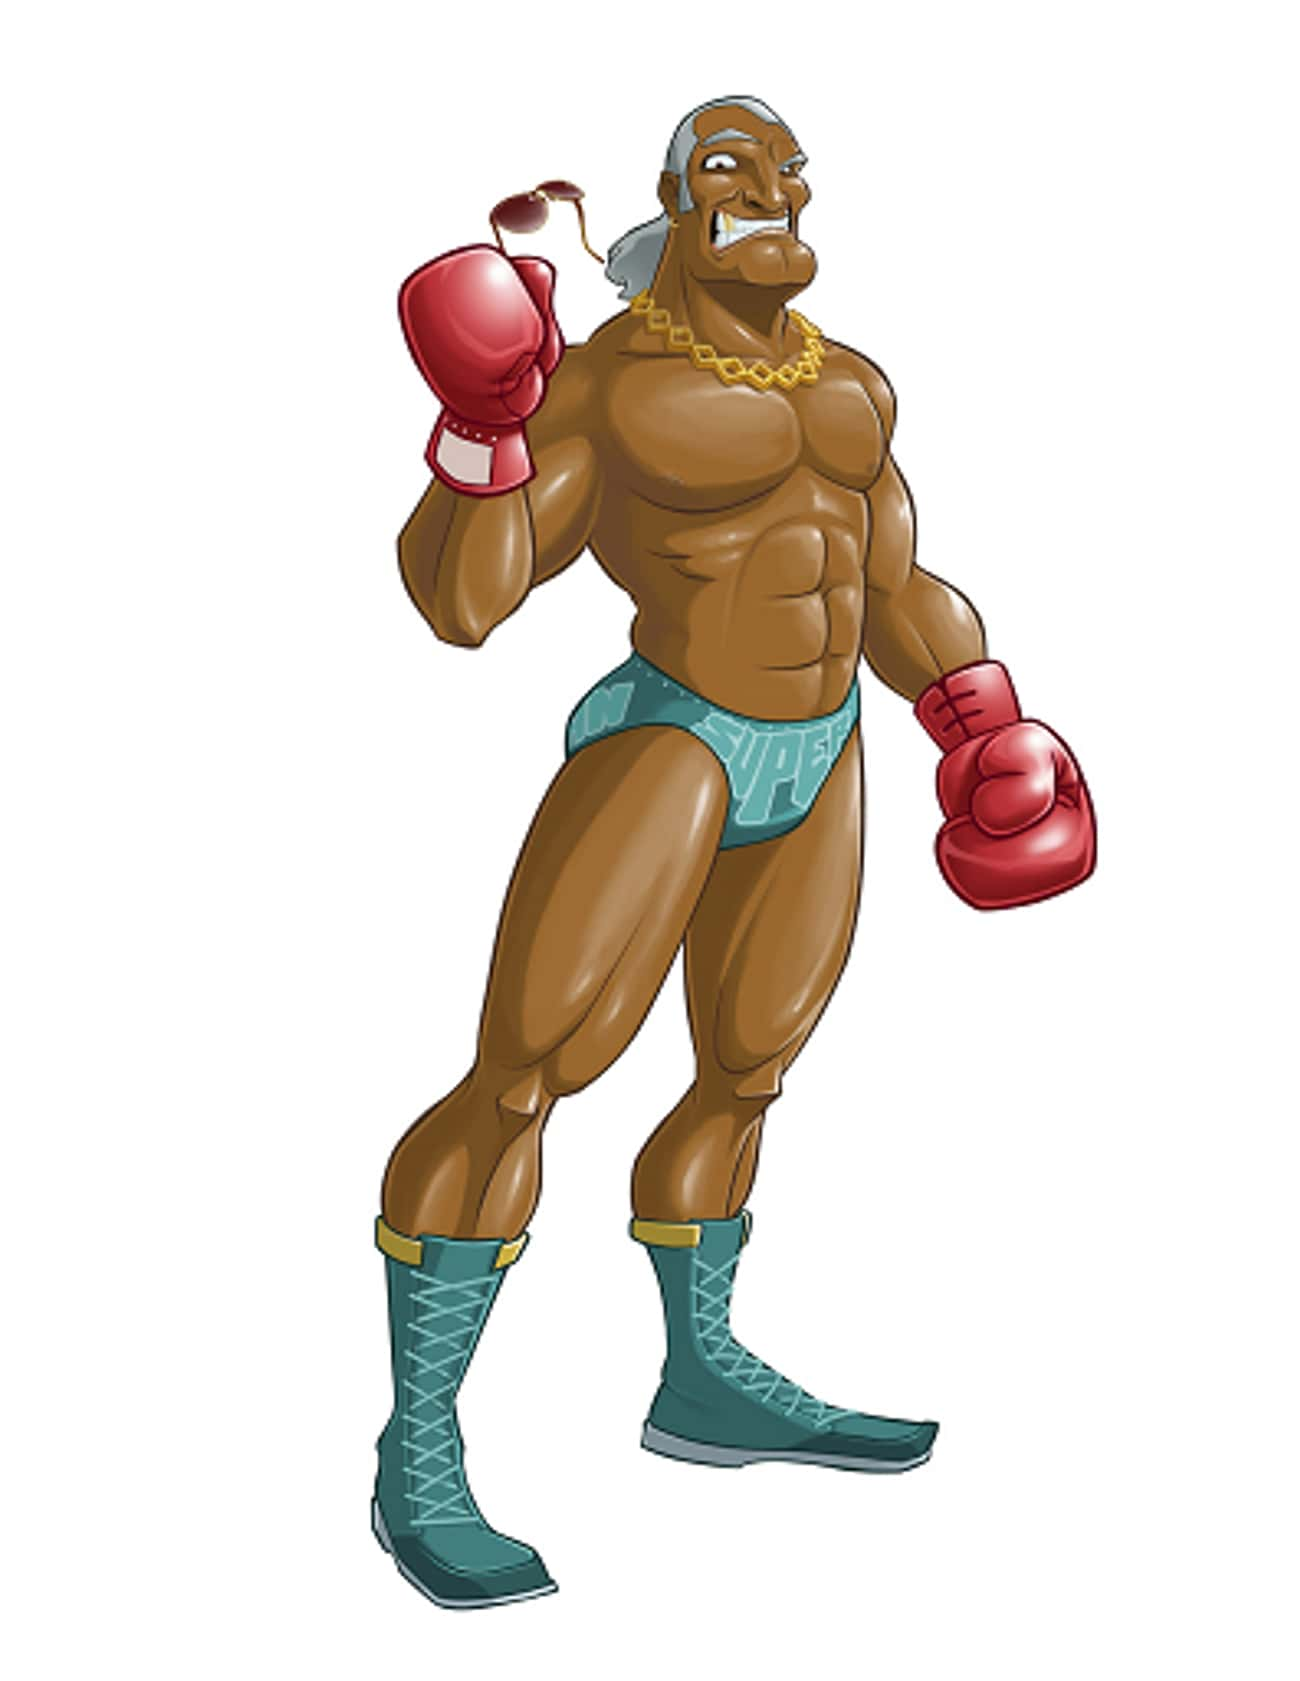 Super Macho Man is listed (or ranked) 3 on the list All Punch Out Characters: List of Punch Out Game Characters